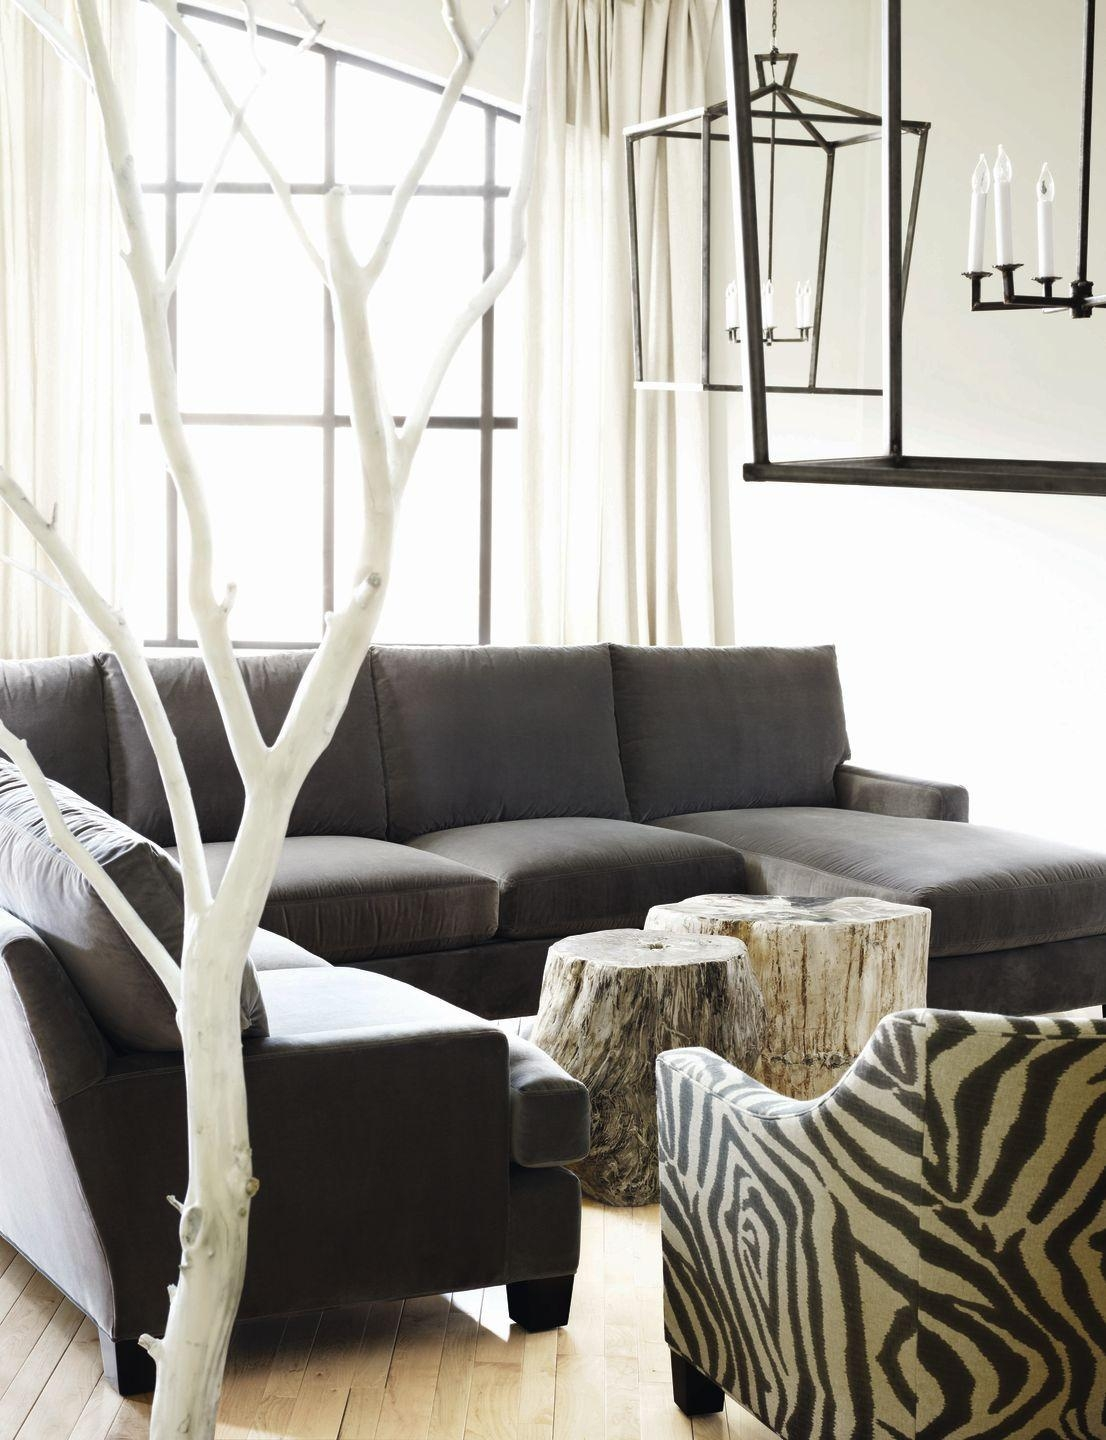 Love Lee: Save 20% On Lee Industries In October | James Craig With Lee Industries Sectional (Image 18 of 20)